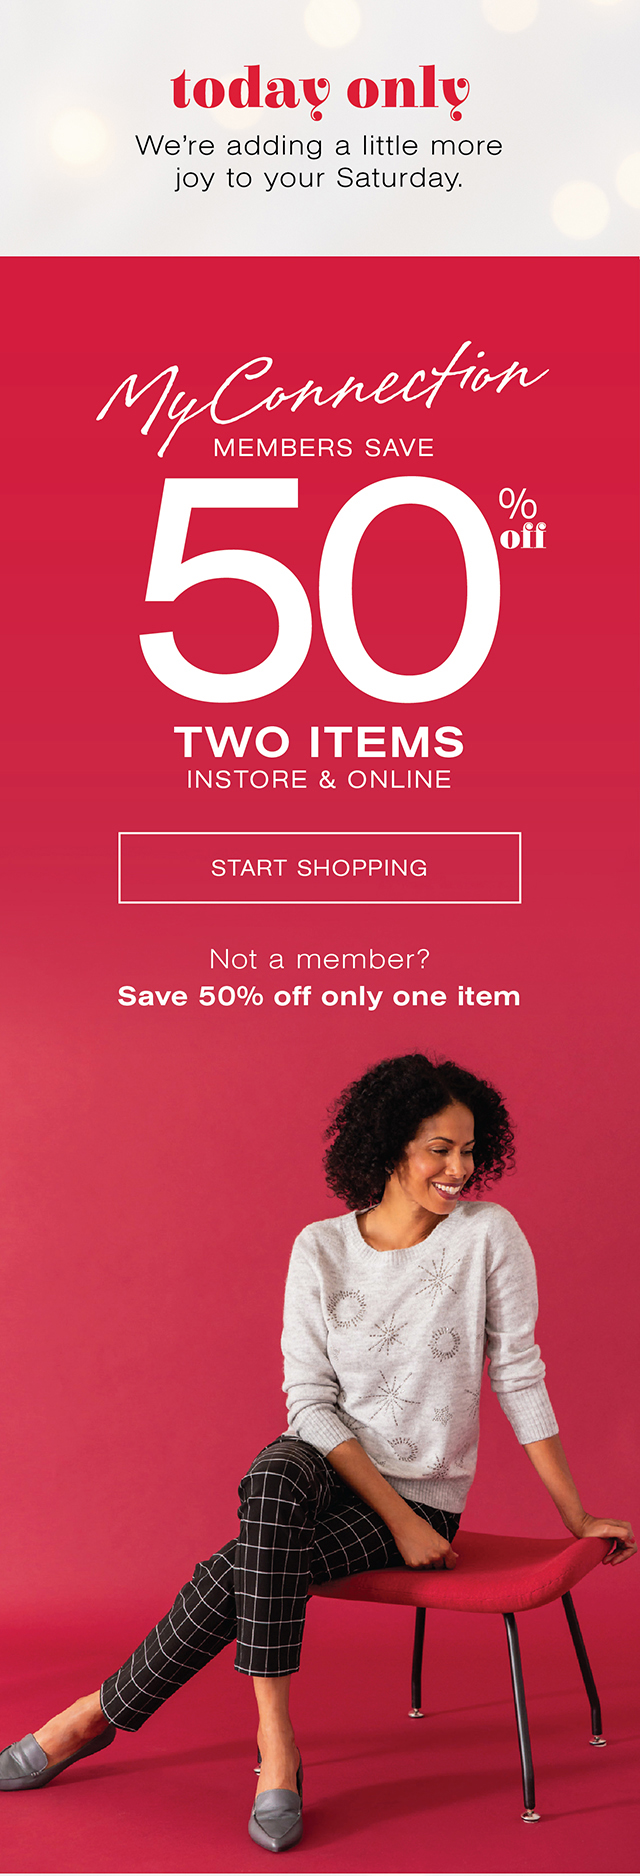 Today Only: My Connection members save 50% off two items